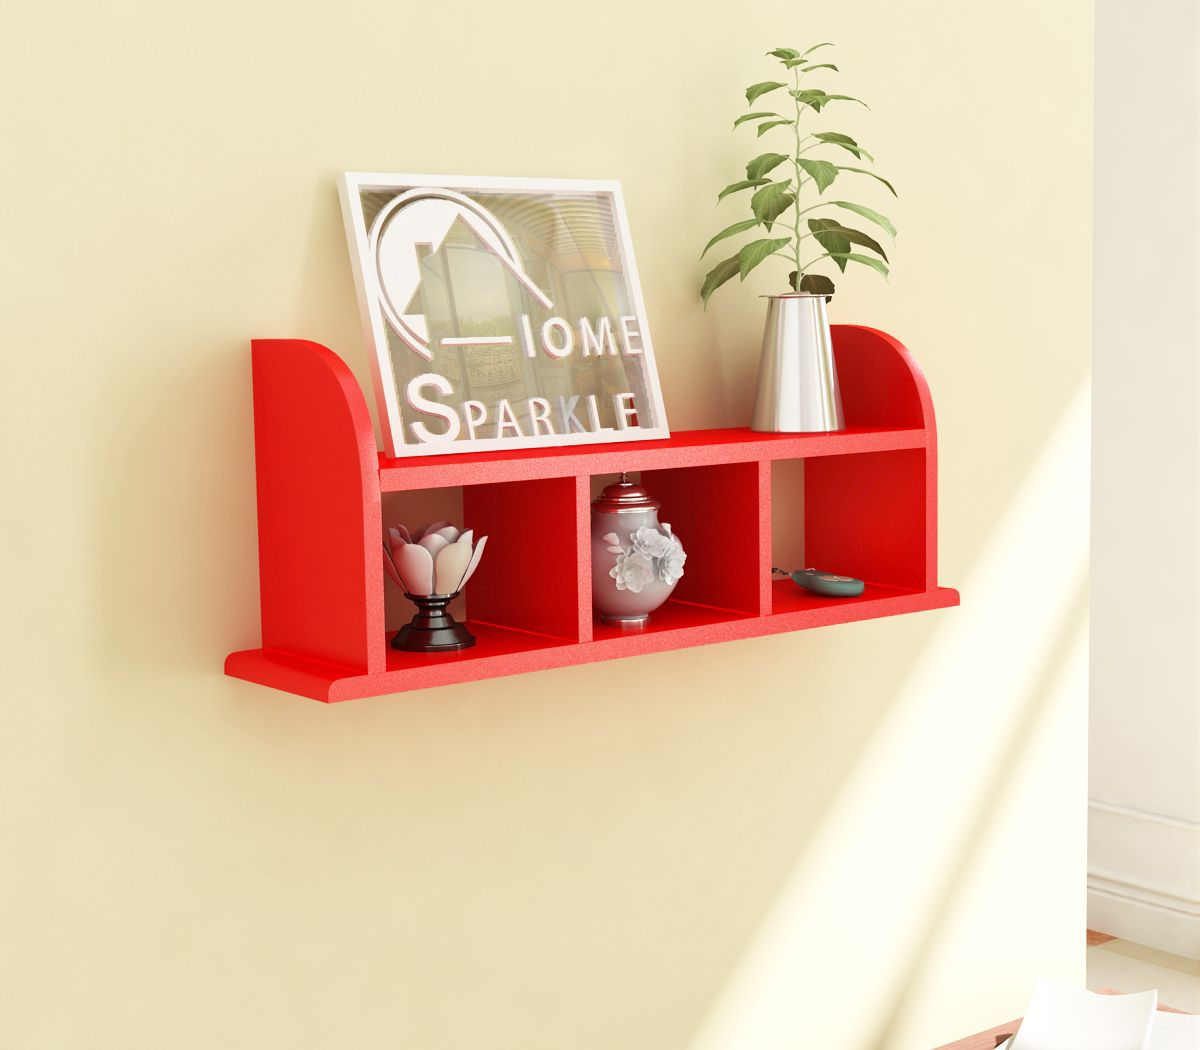 Home Sparkle MDF Straight Wall Shelf For Wall Décor -Suitable For Living Room/Bed Room (Designed By Craftsman)